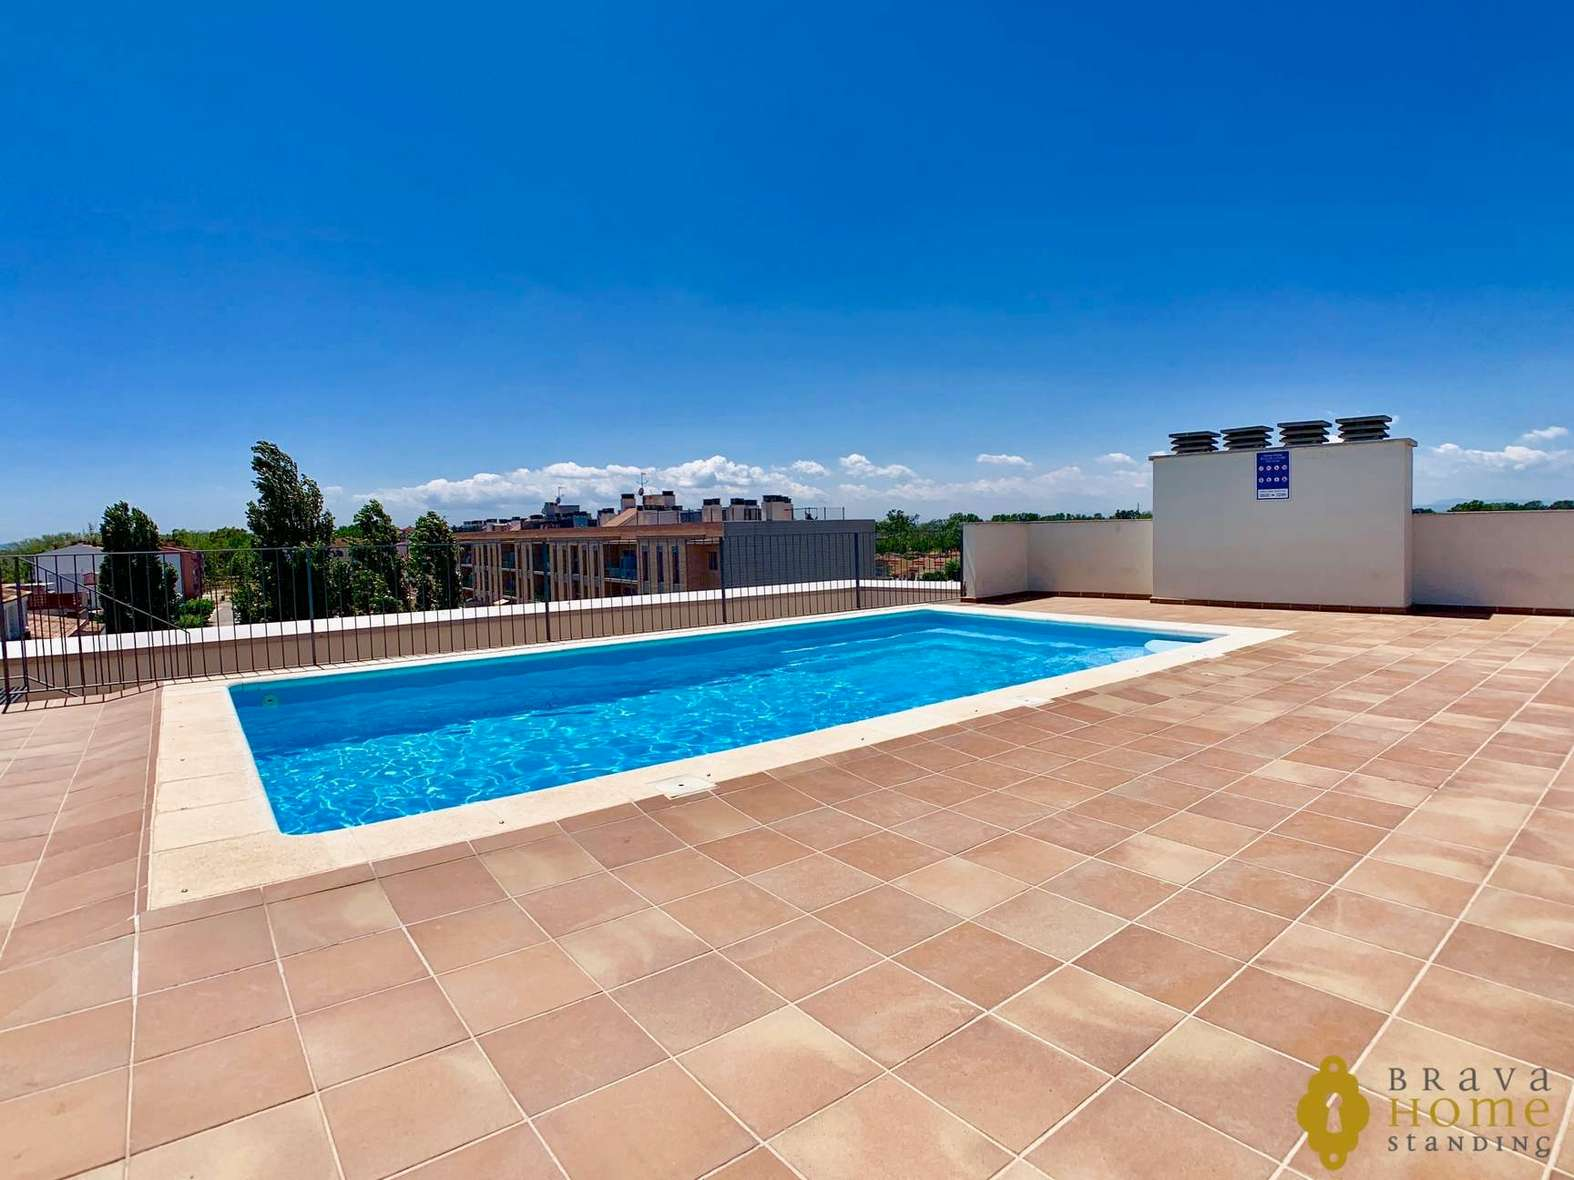 BEAUTIFUL MODERN APARTMENT WITH POOL FOR SALE IN EMPURIABRAVA